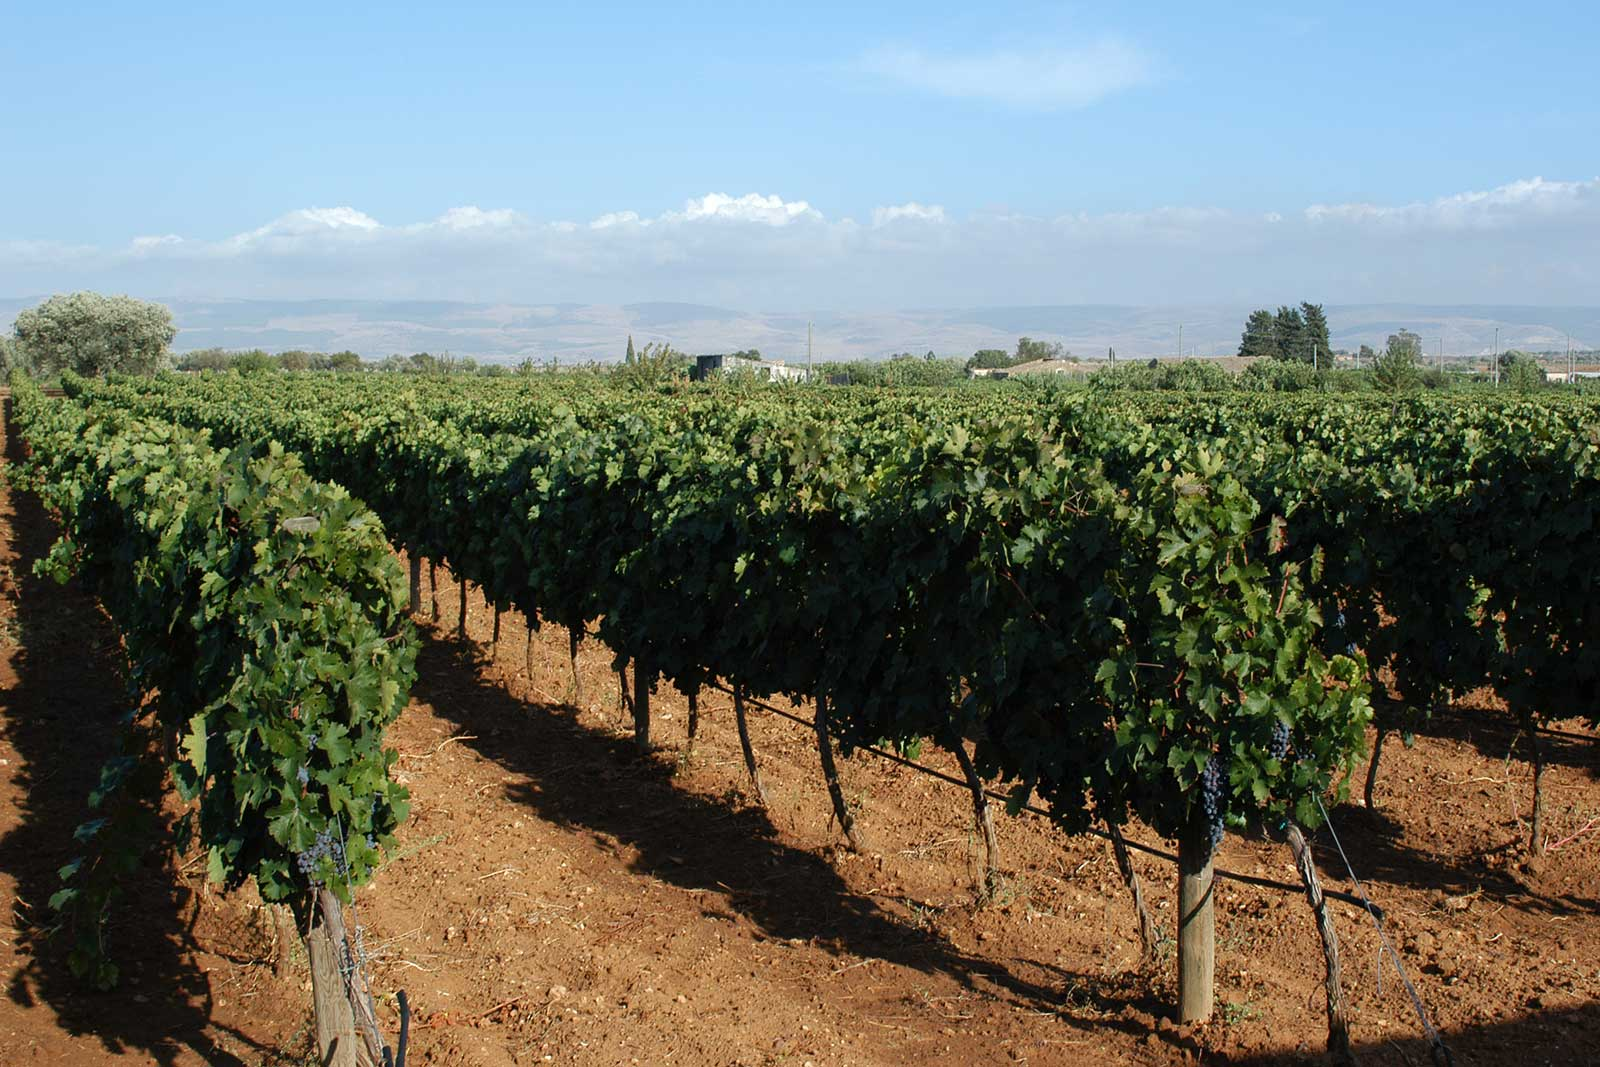 Vineyards at Feudo di Santa Tresa. ©Vias Imports